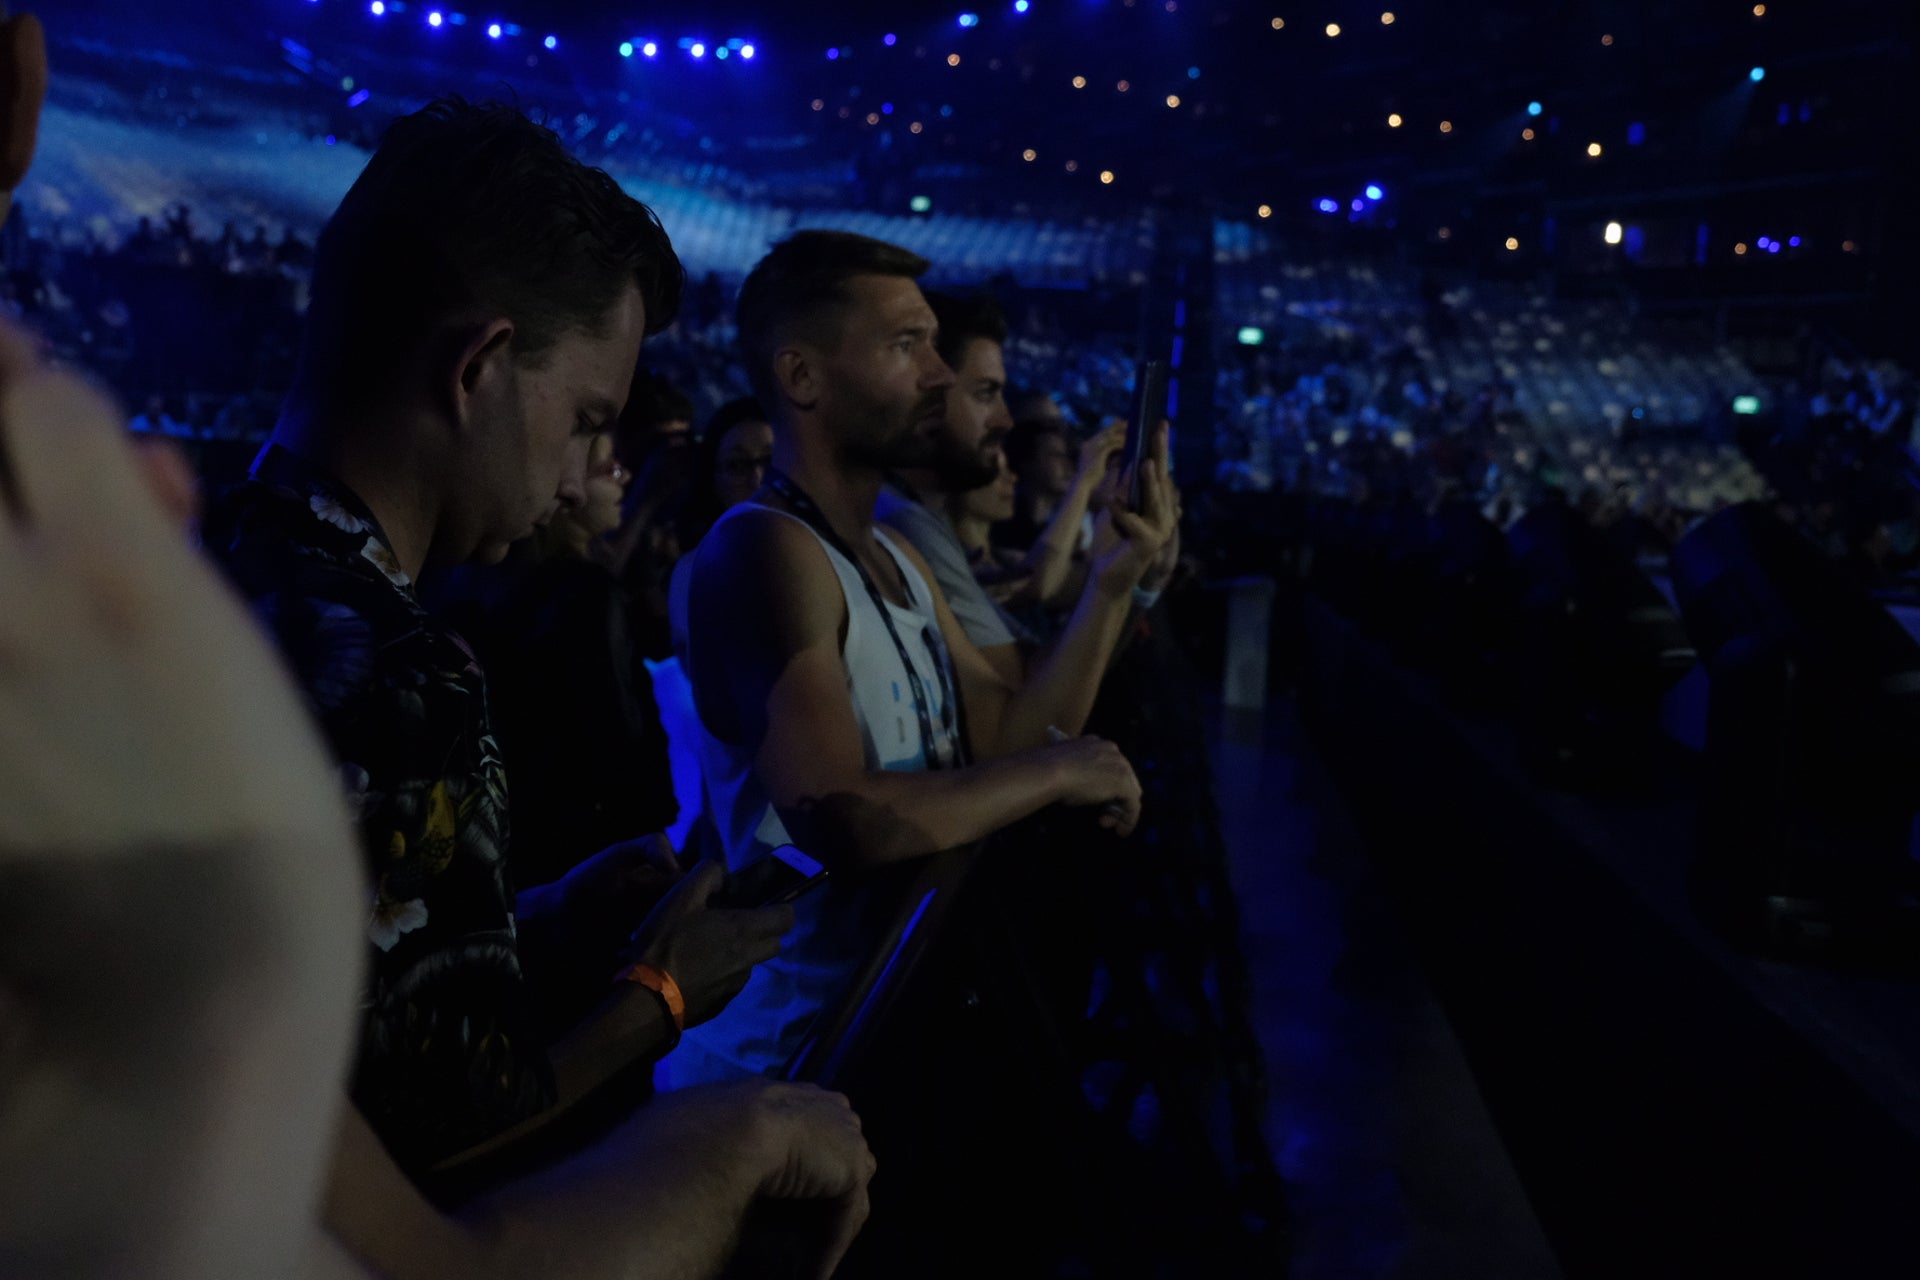 Journalists watch a rehearsal for Eurovision 2019, held in Tel Aviv, Israel, on May 2019.